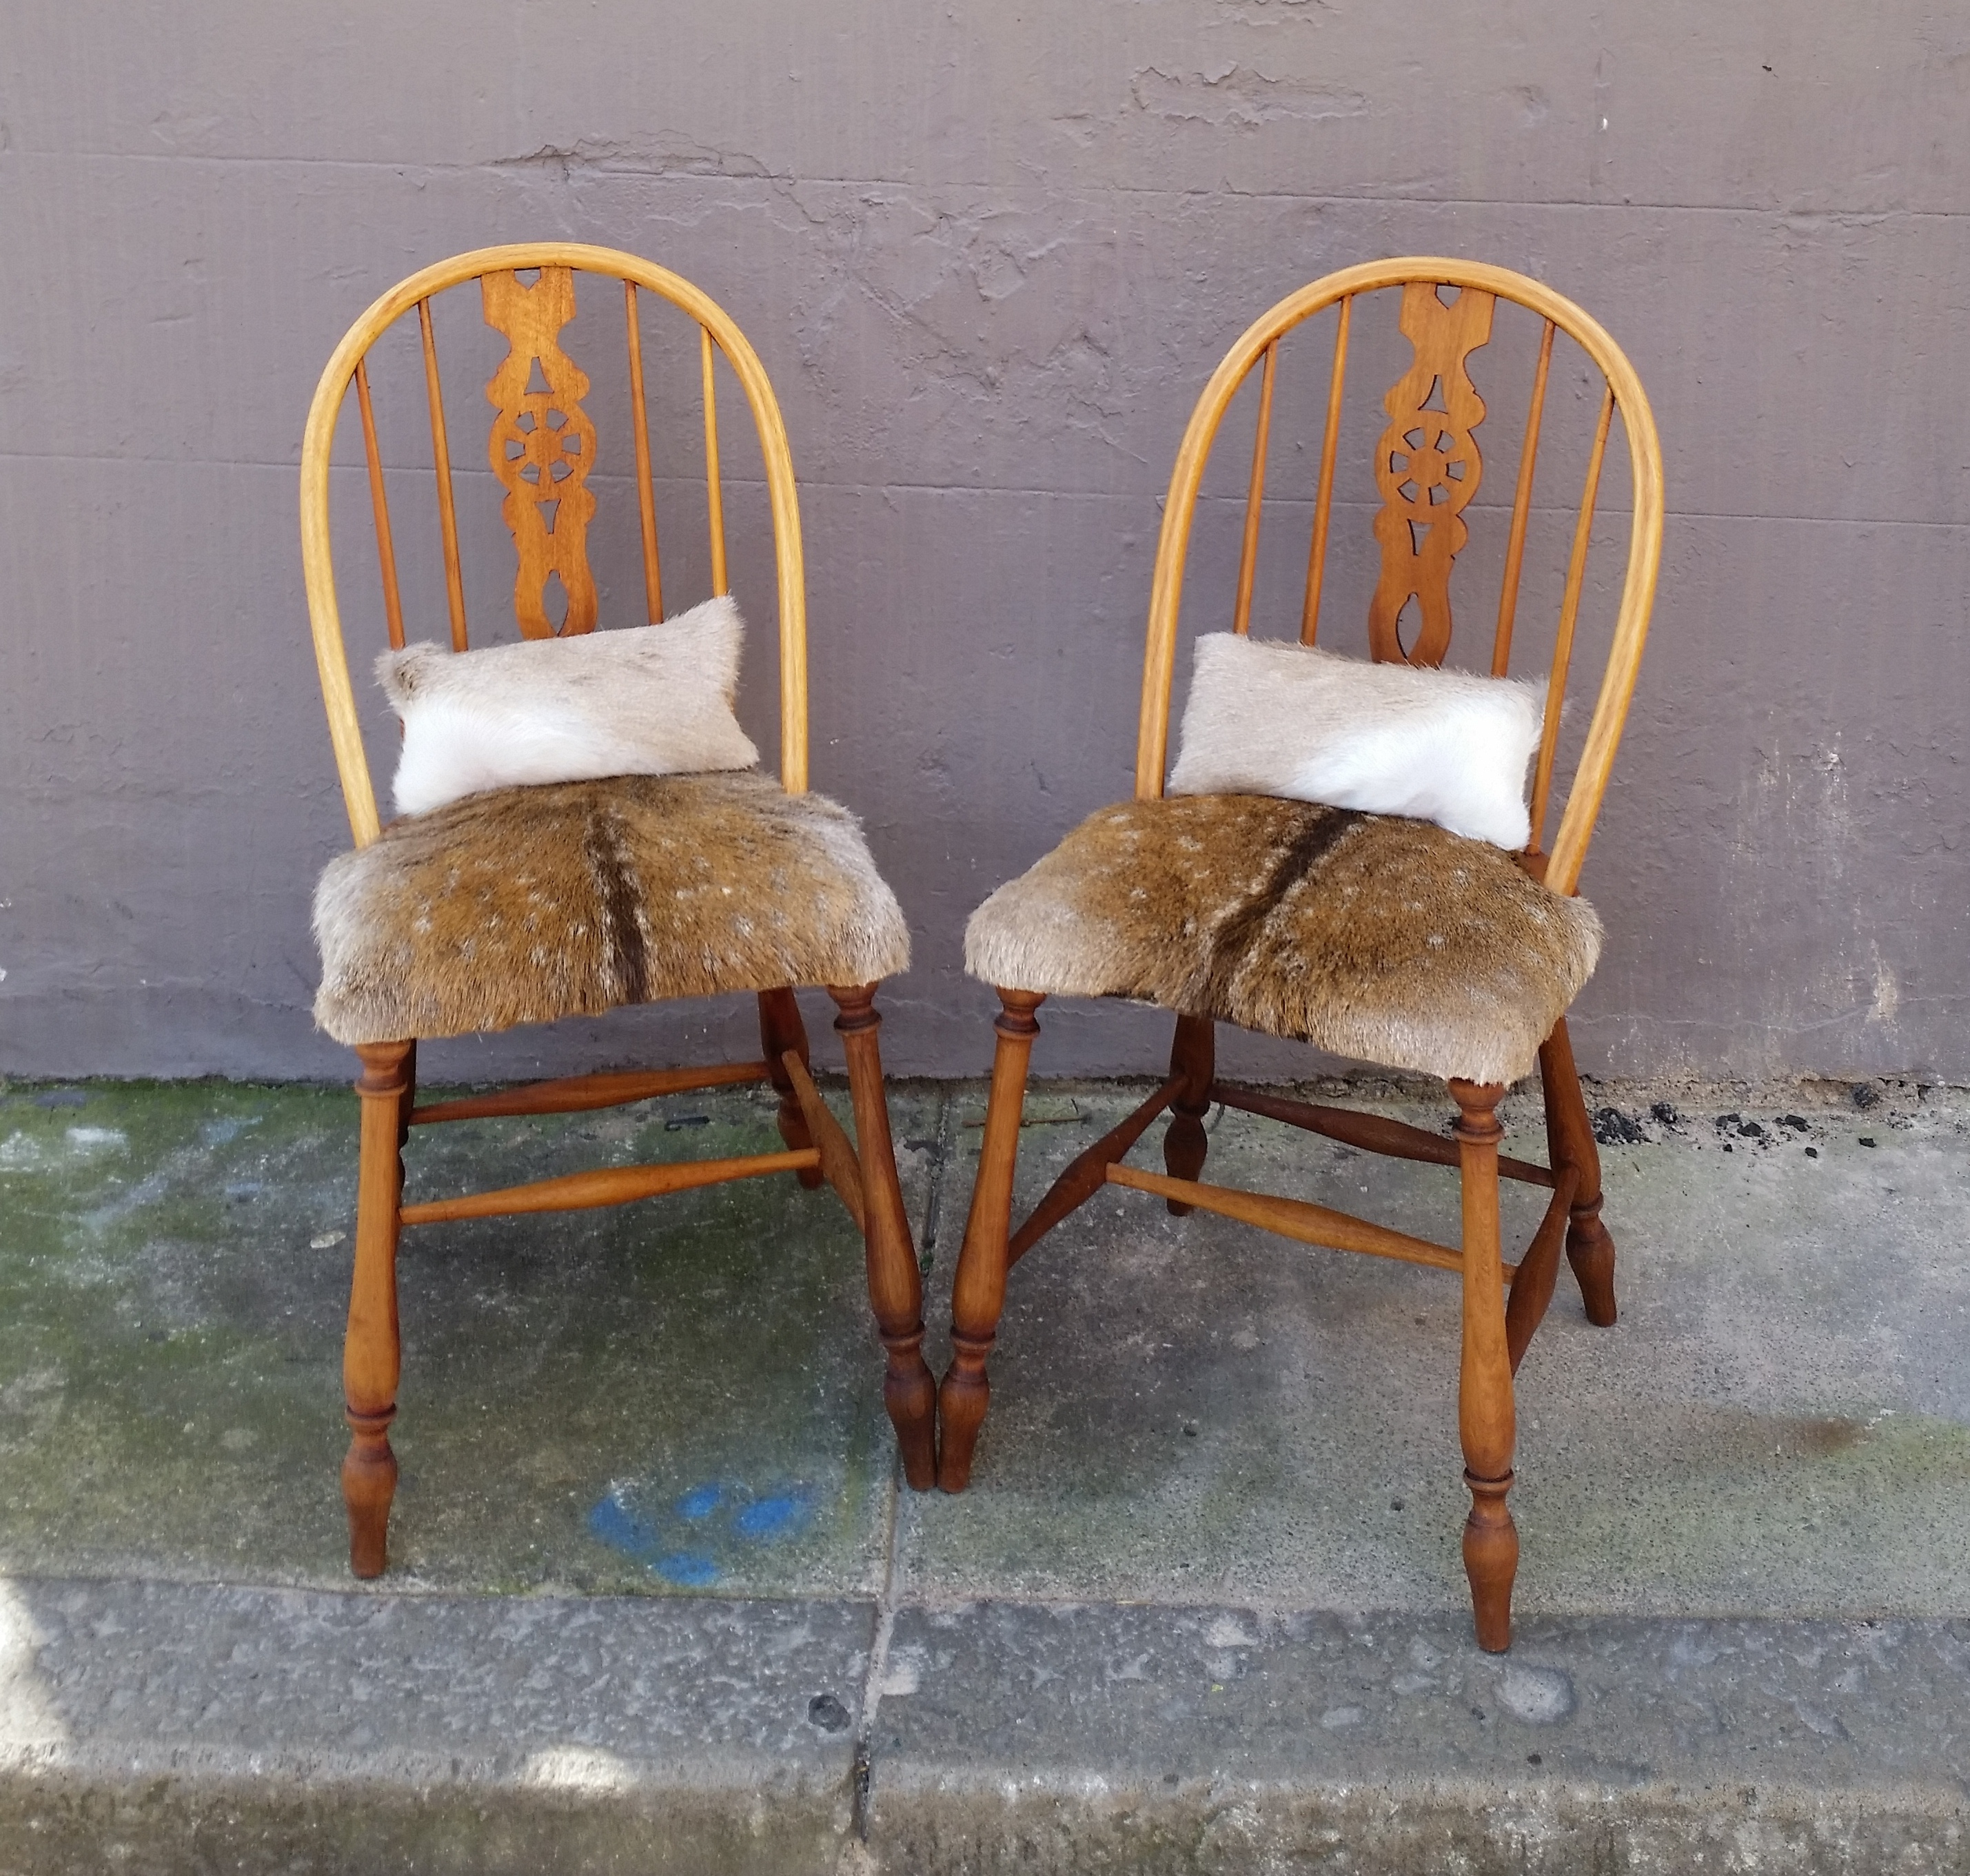 Vintage Chairs Restored Using Deer Hide | Barrenjoey Collective | Avalon NSW